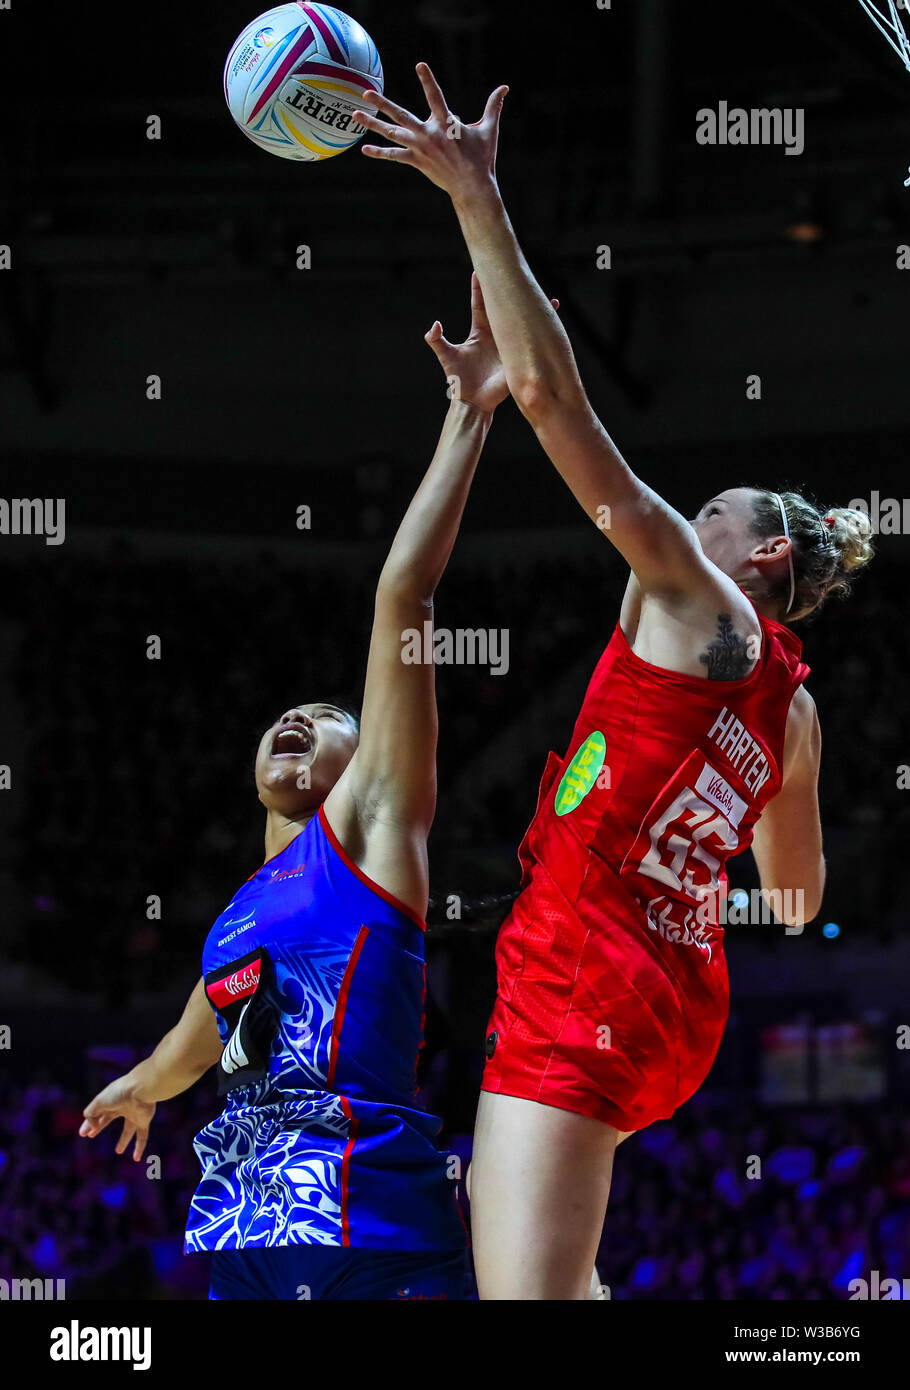 England's Joanne Harten and Samoa's Rachel Rasmussen during the Netball World Cup match at the M&S Bank Arena, Liverpool. - Stock Image